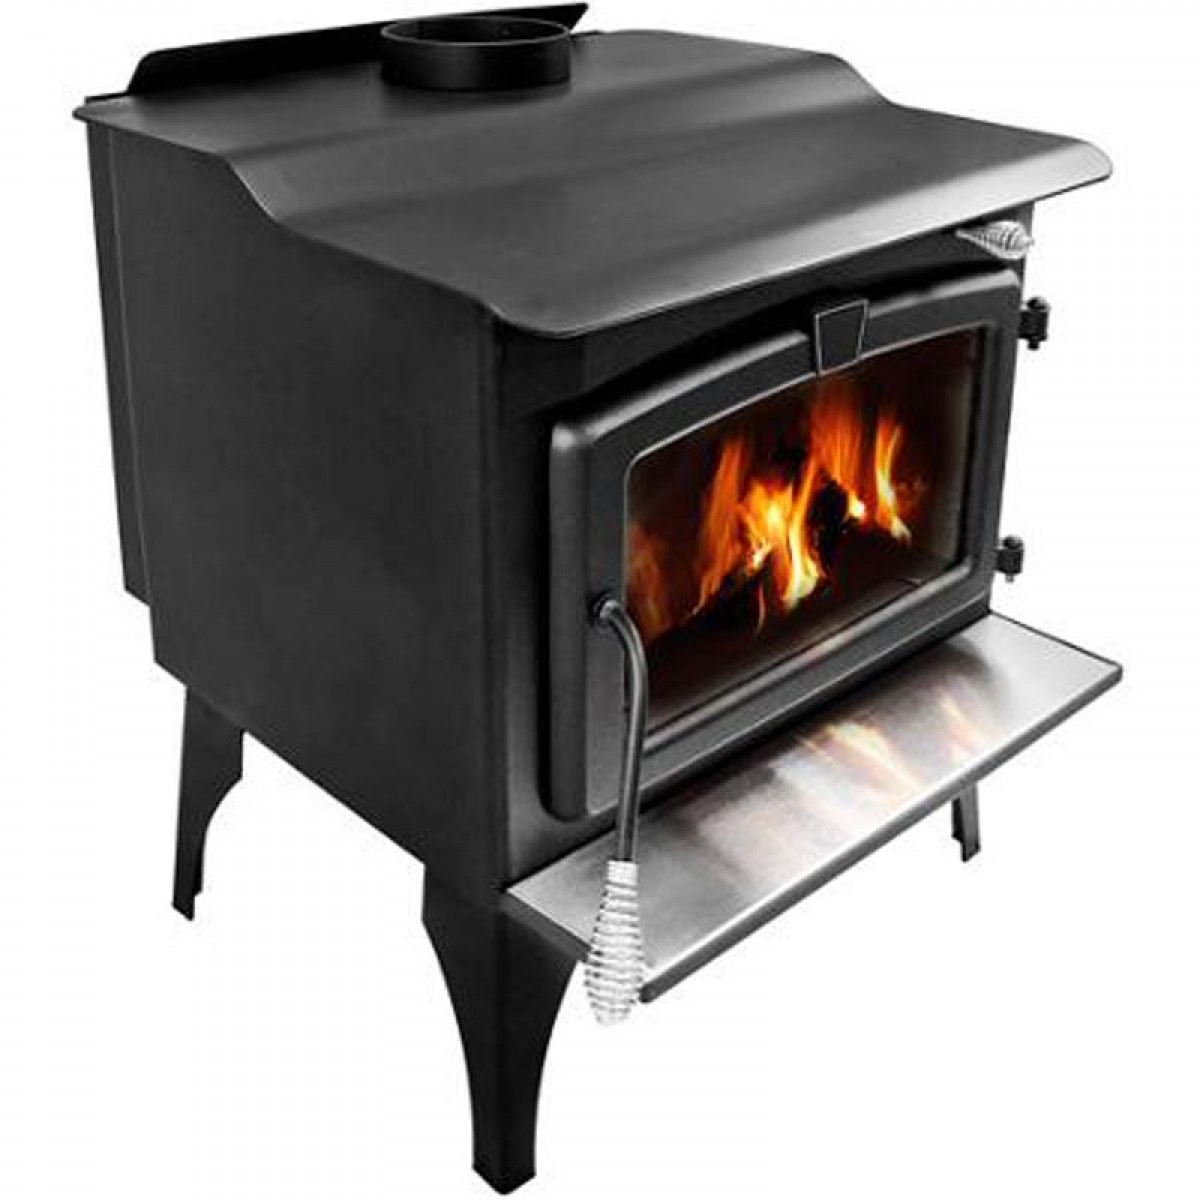 Pleasant Hearth: Pleasant Hearth Medium Wood Burning Stove With Legs LWS-12720